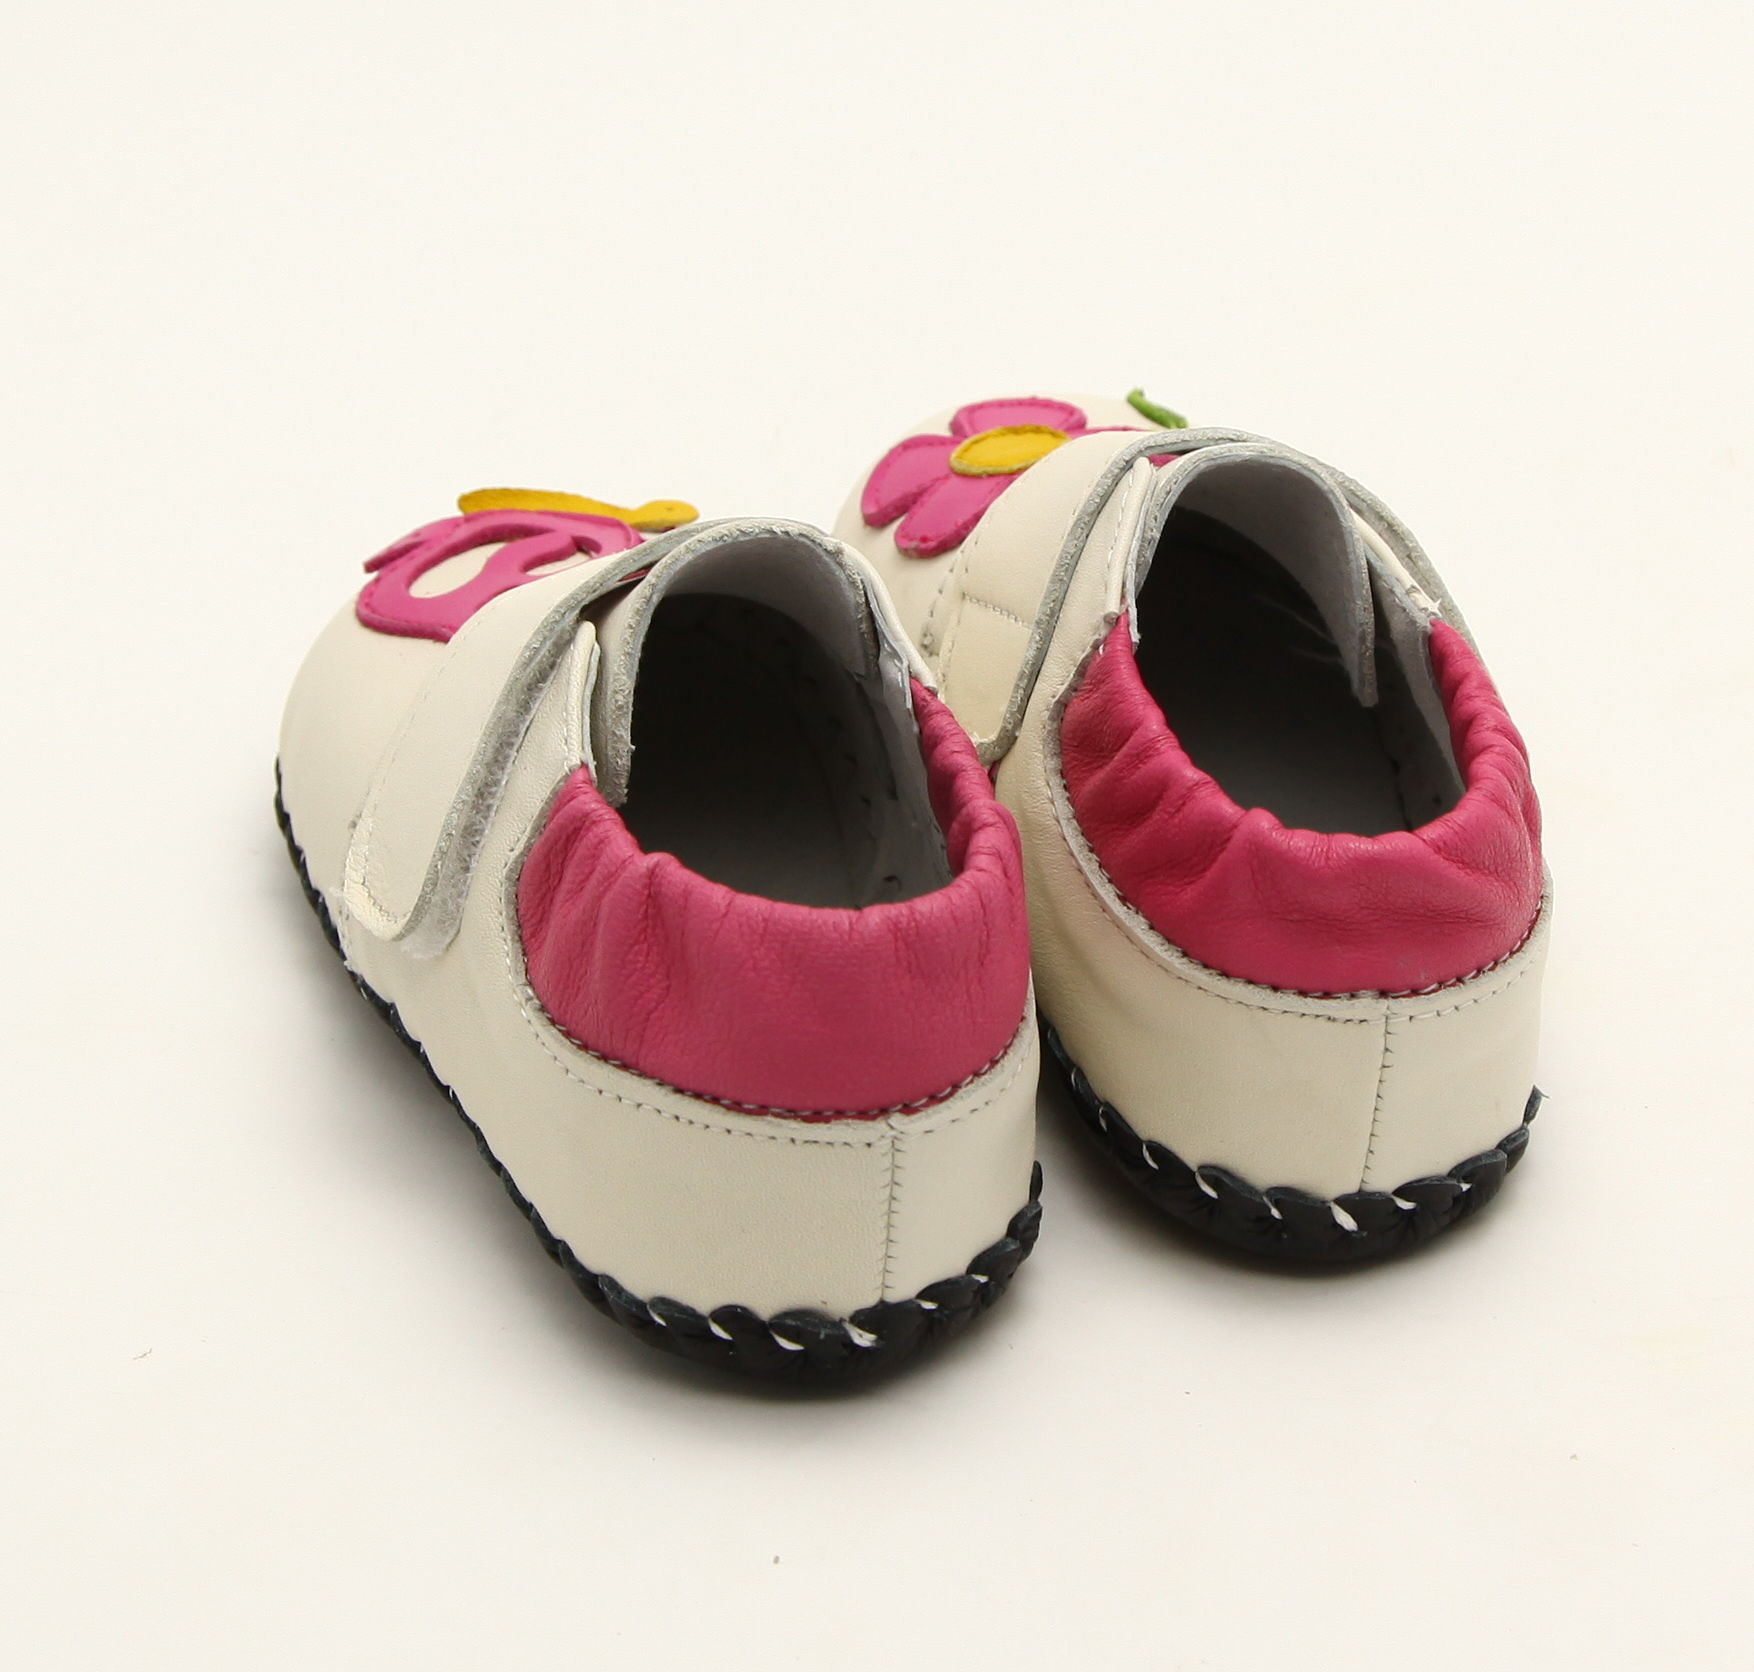 Nectar Baby Shoes Baby Boots